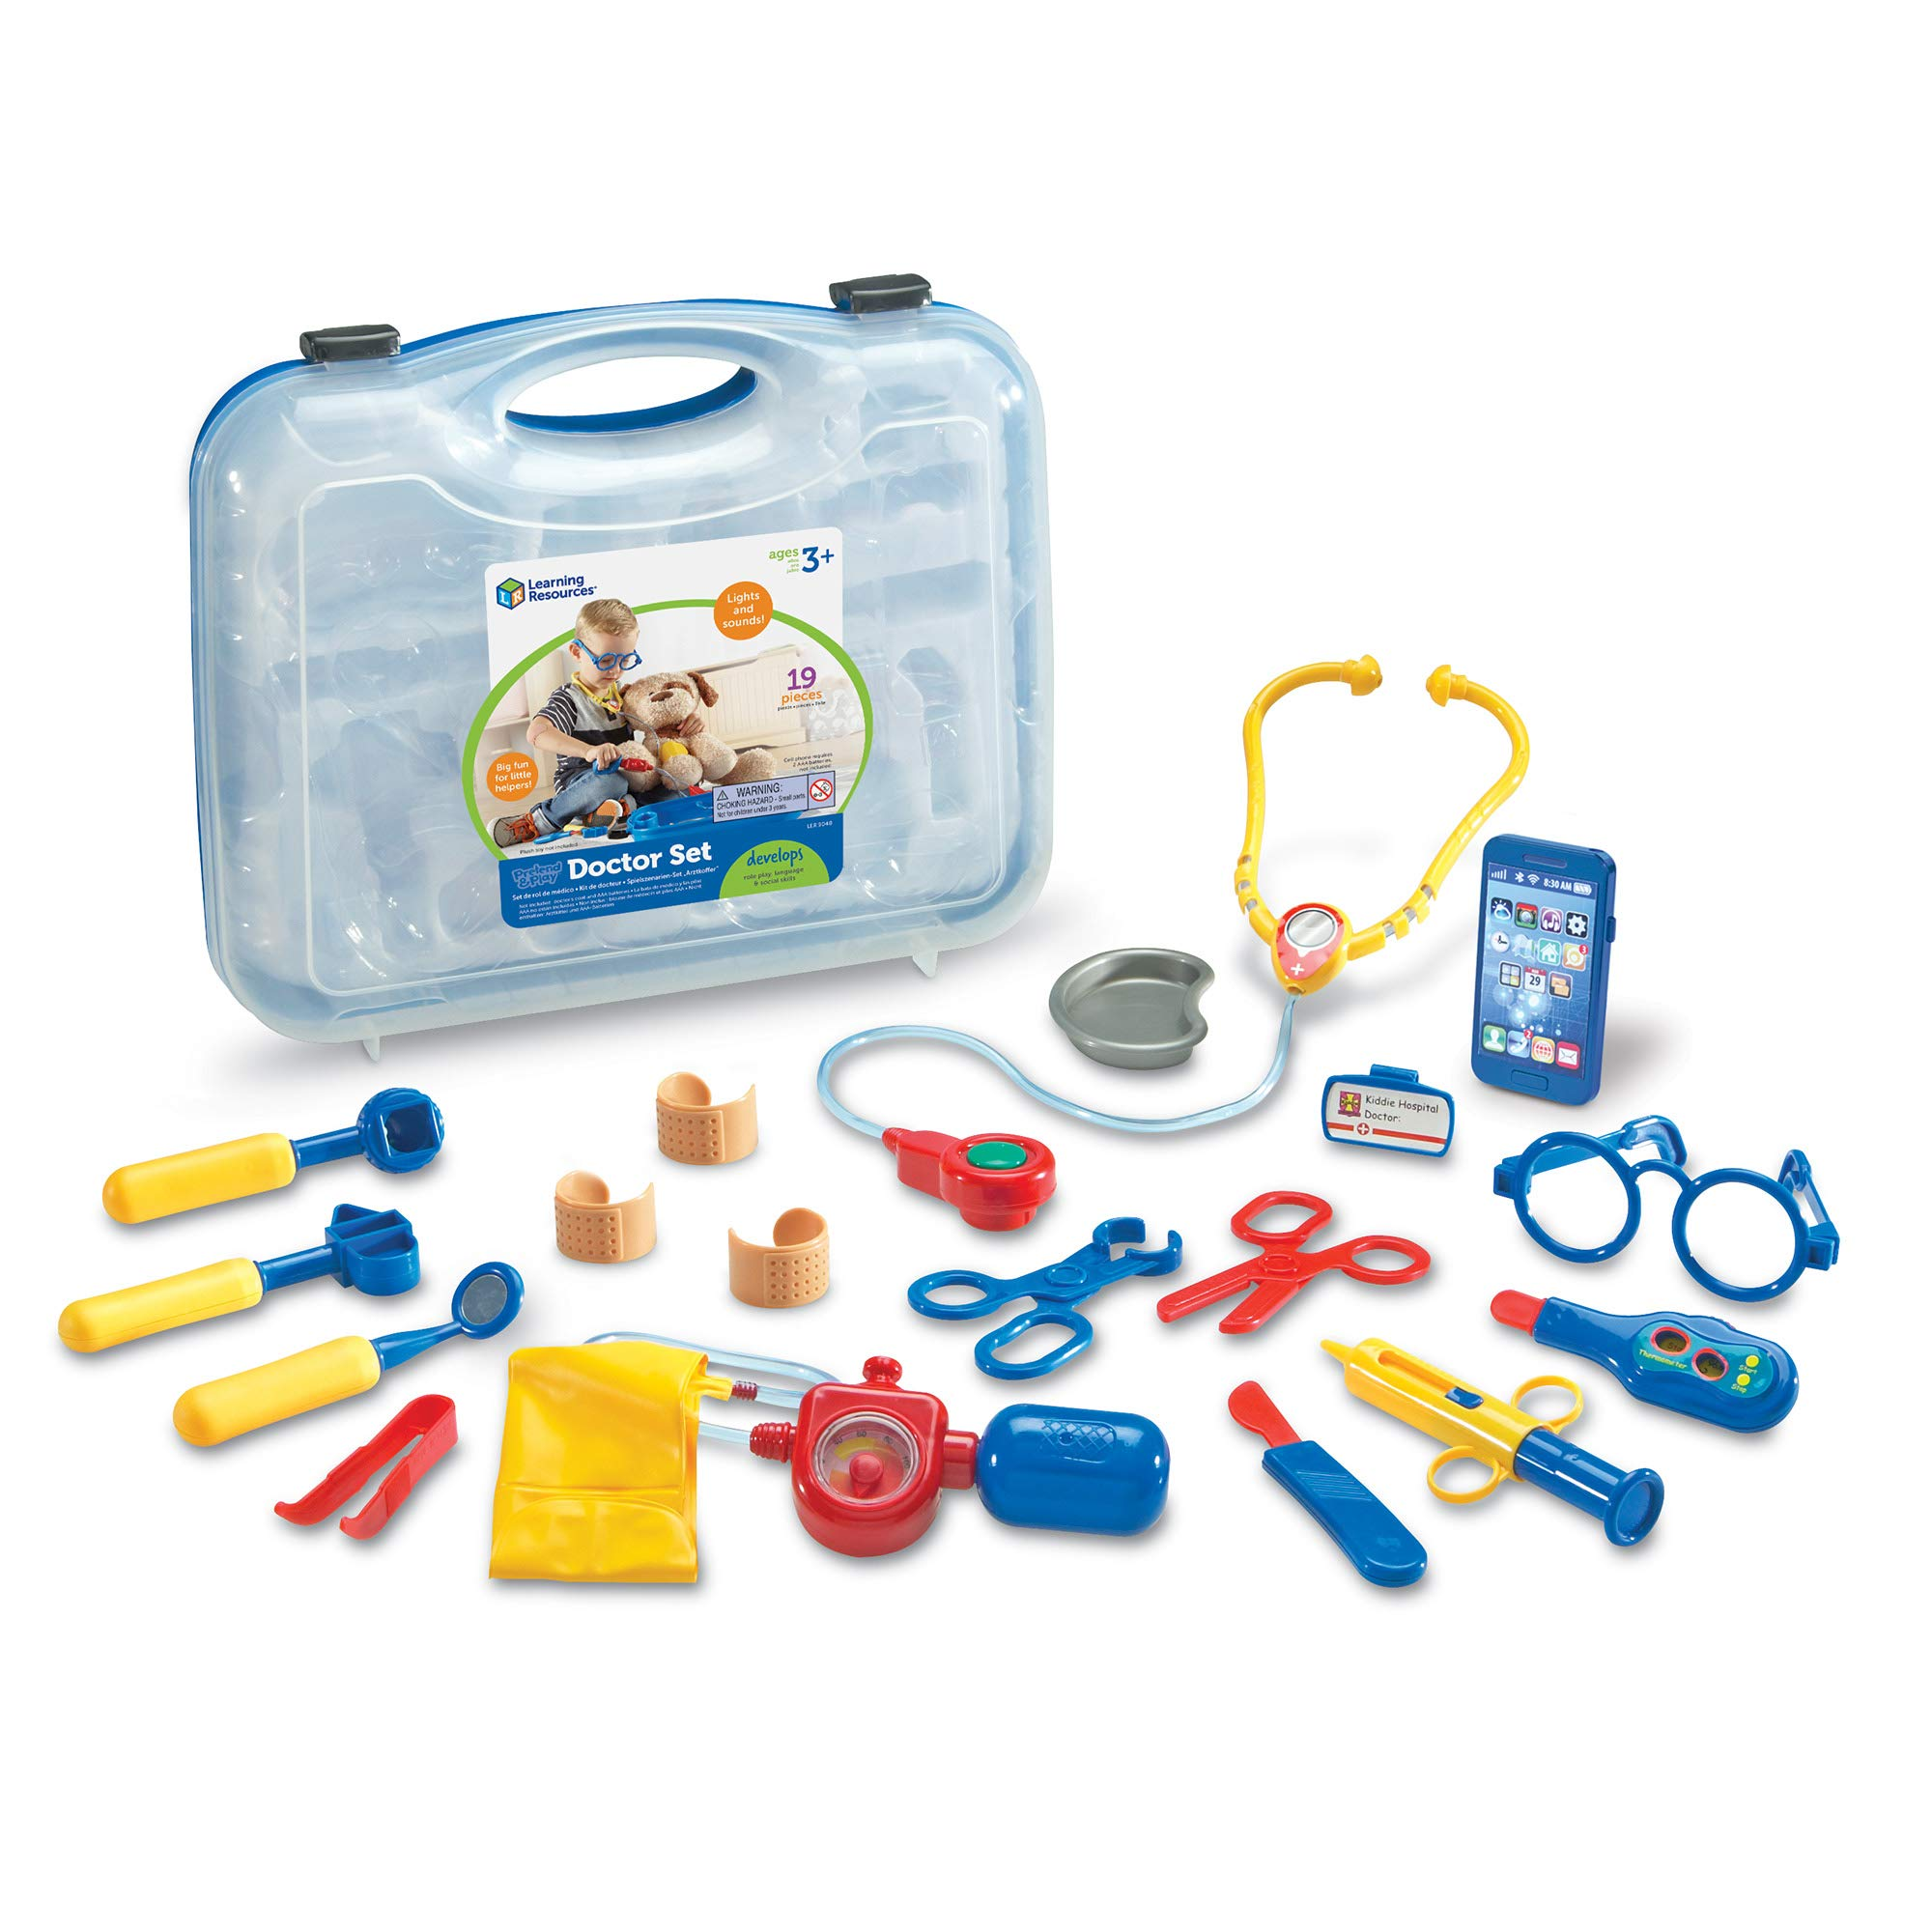 Learning Resources Pretend & Play Doctor Kit For Kids, Blue Doctor/Veterinarian Costume, 19 Piece Set, Ages 3+ by Learning Resources